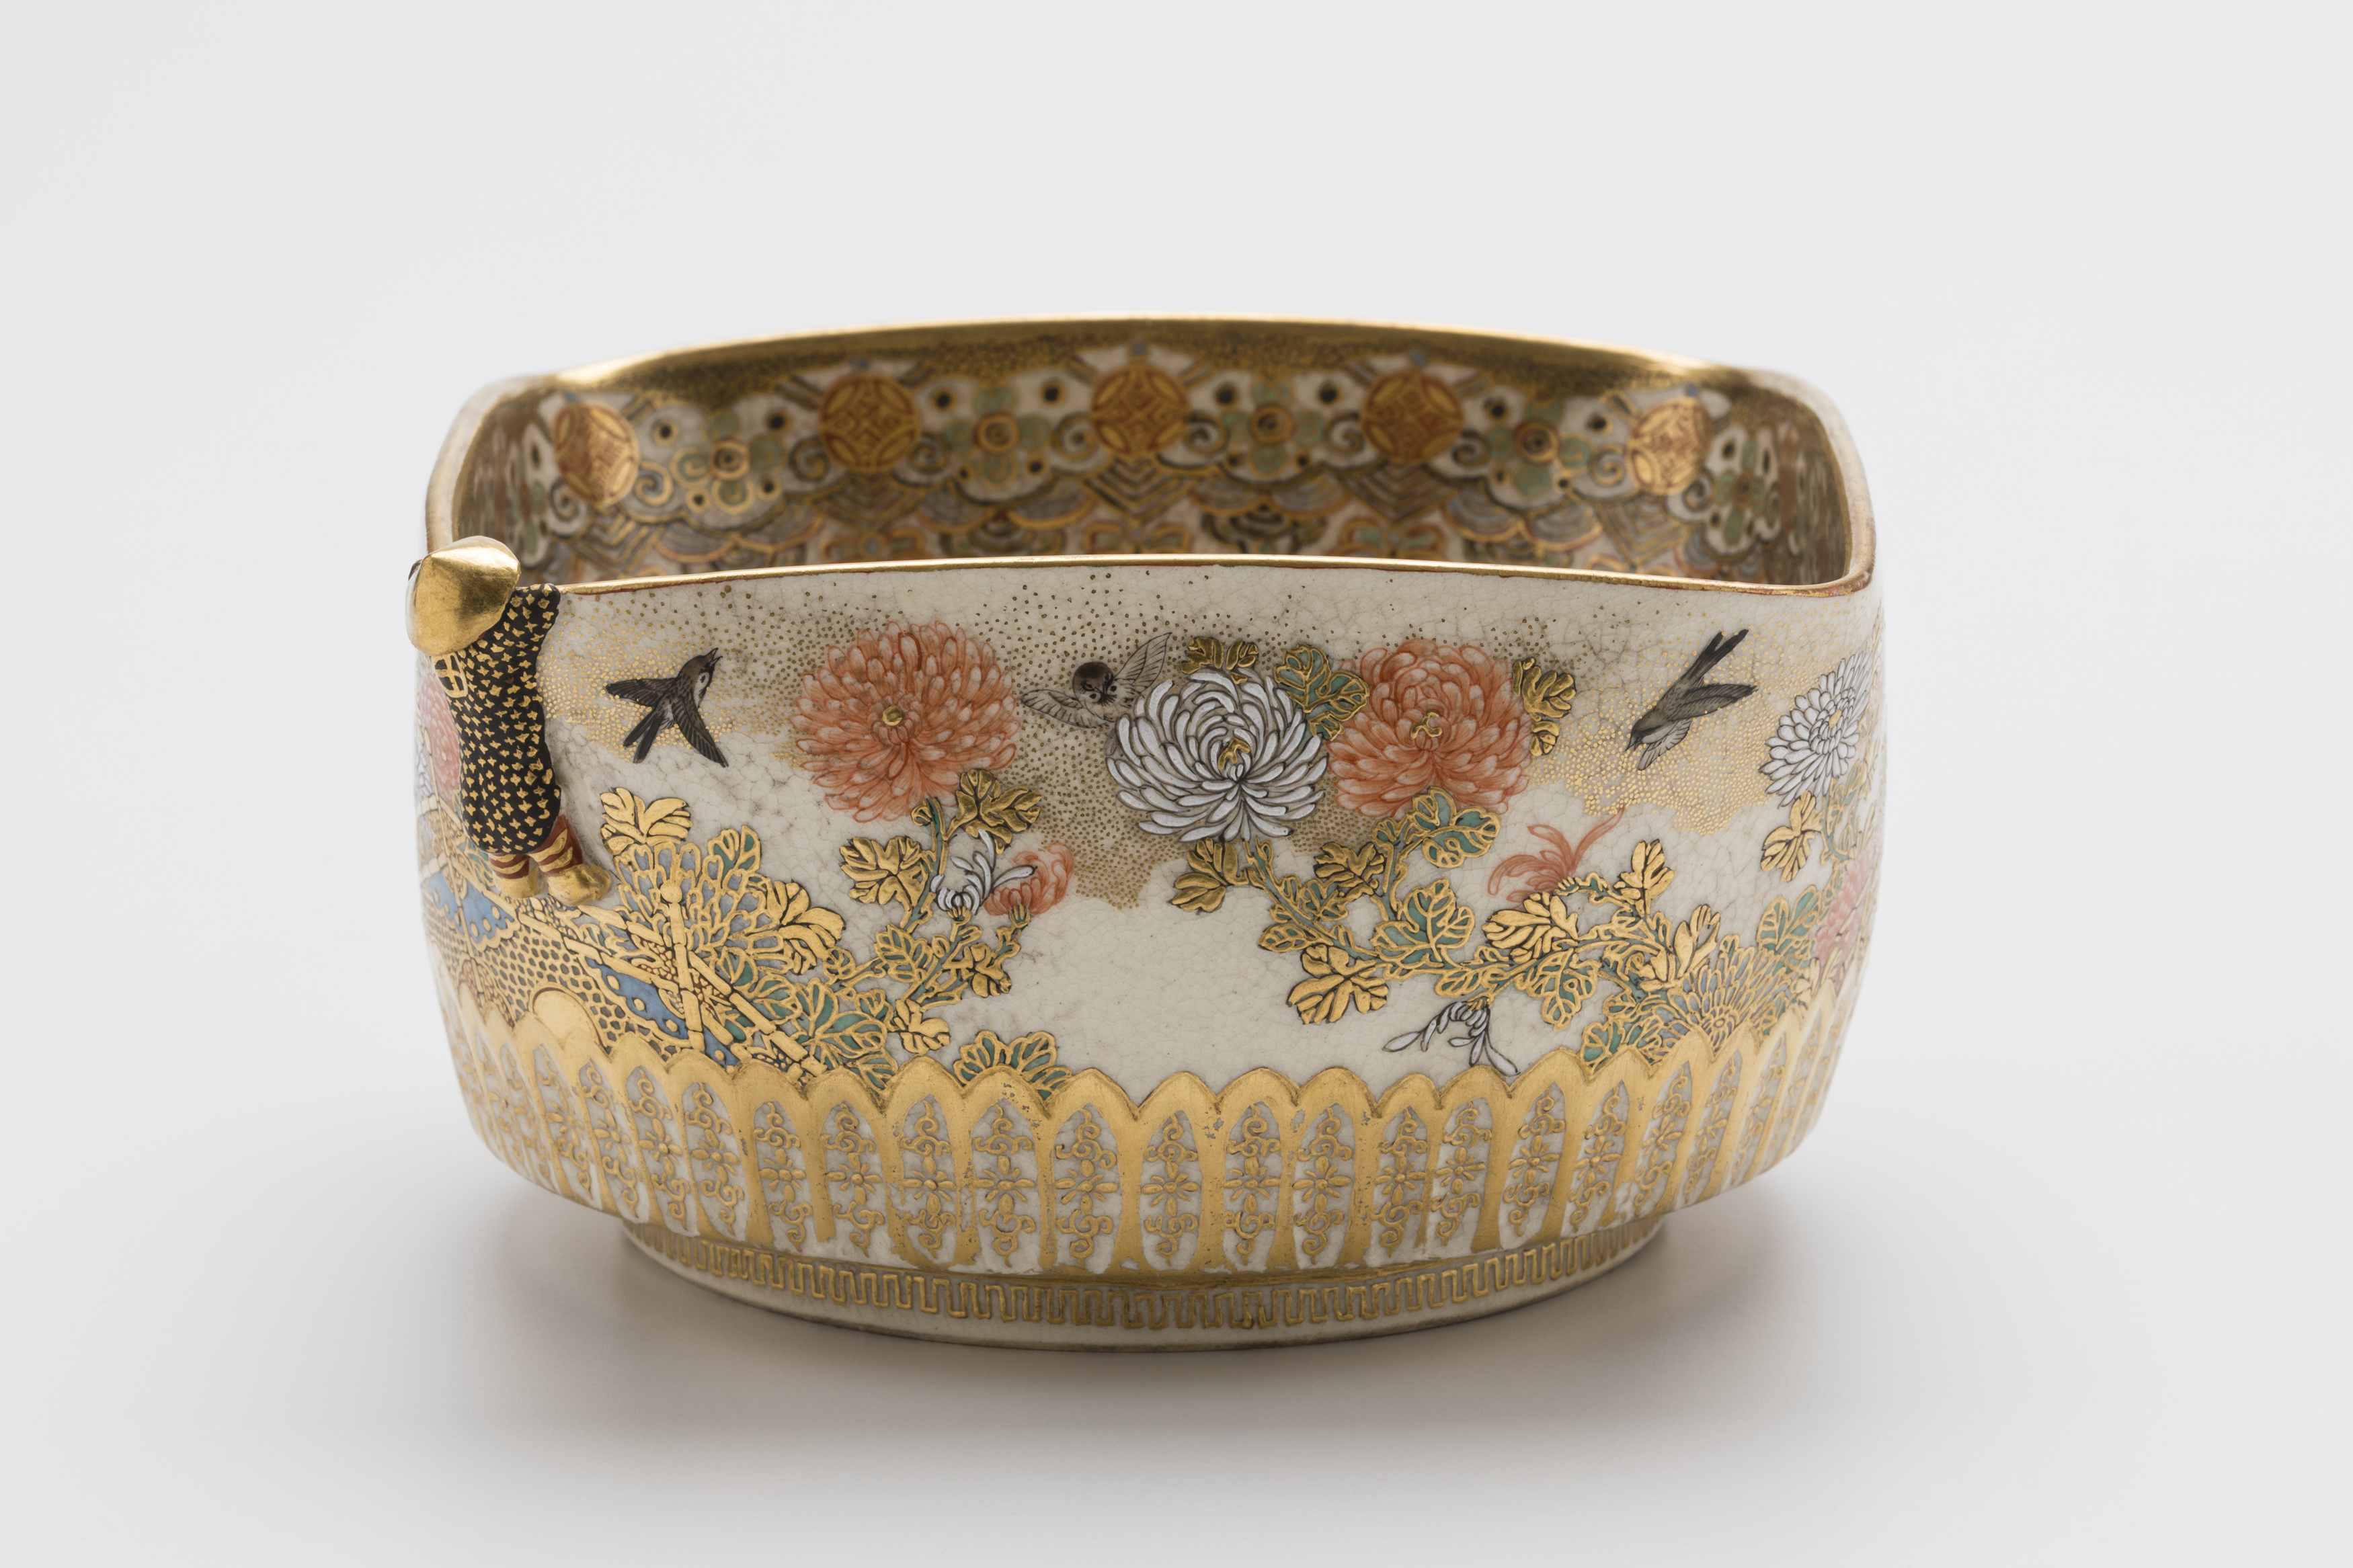 Single object image of a square shape bowl with gold decoration.